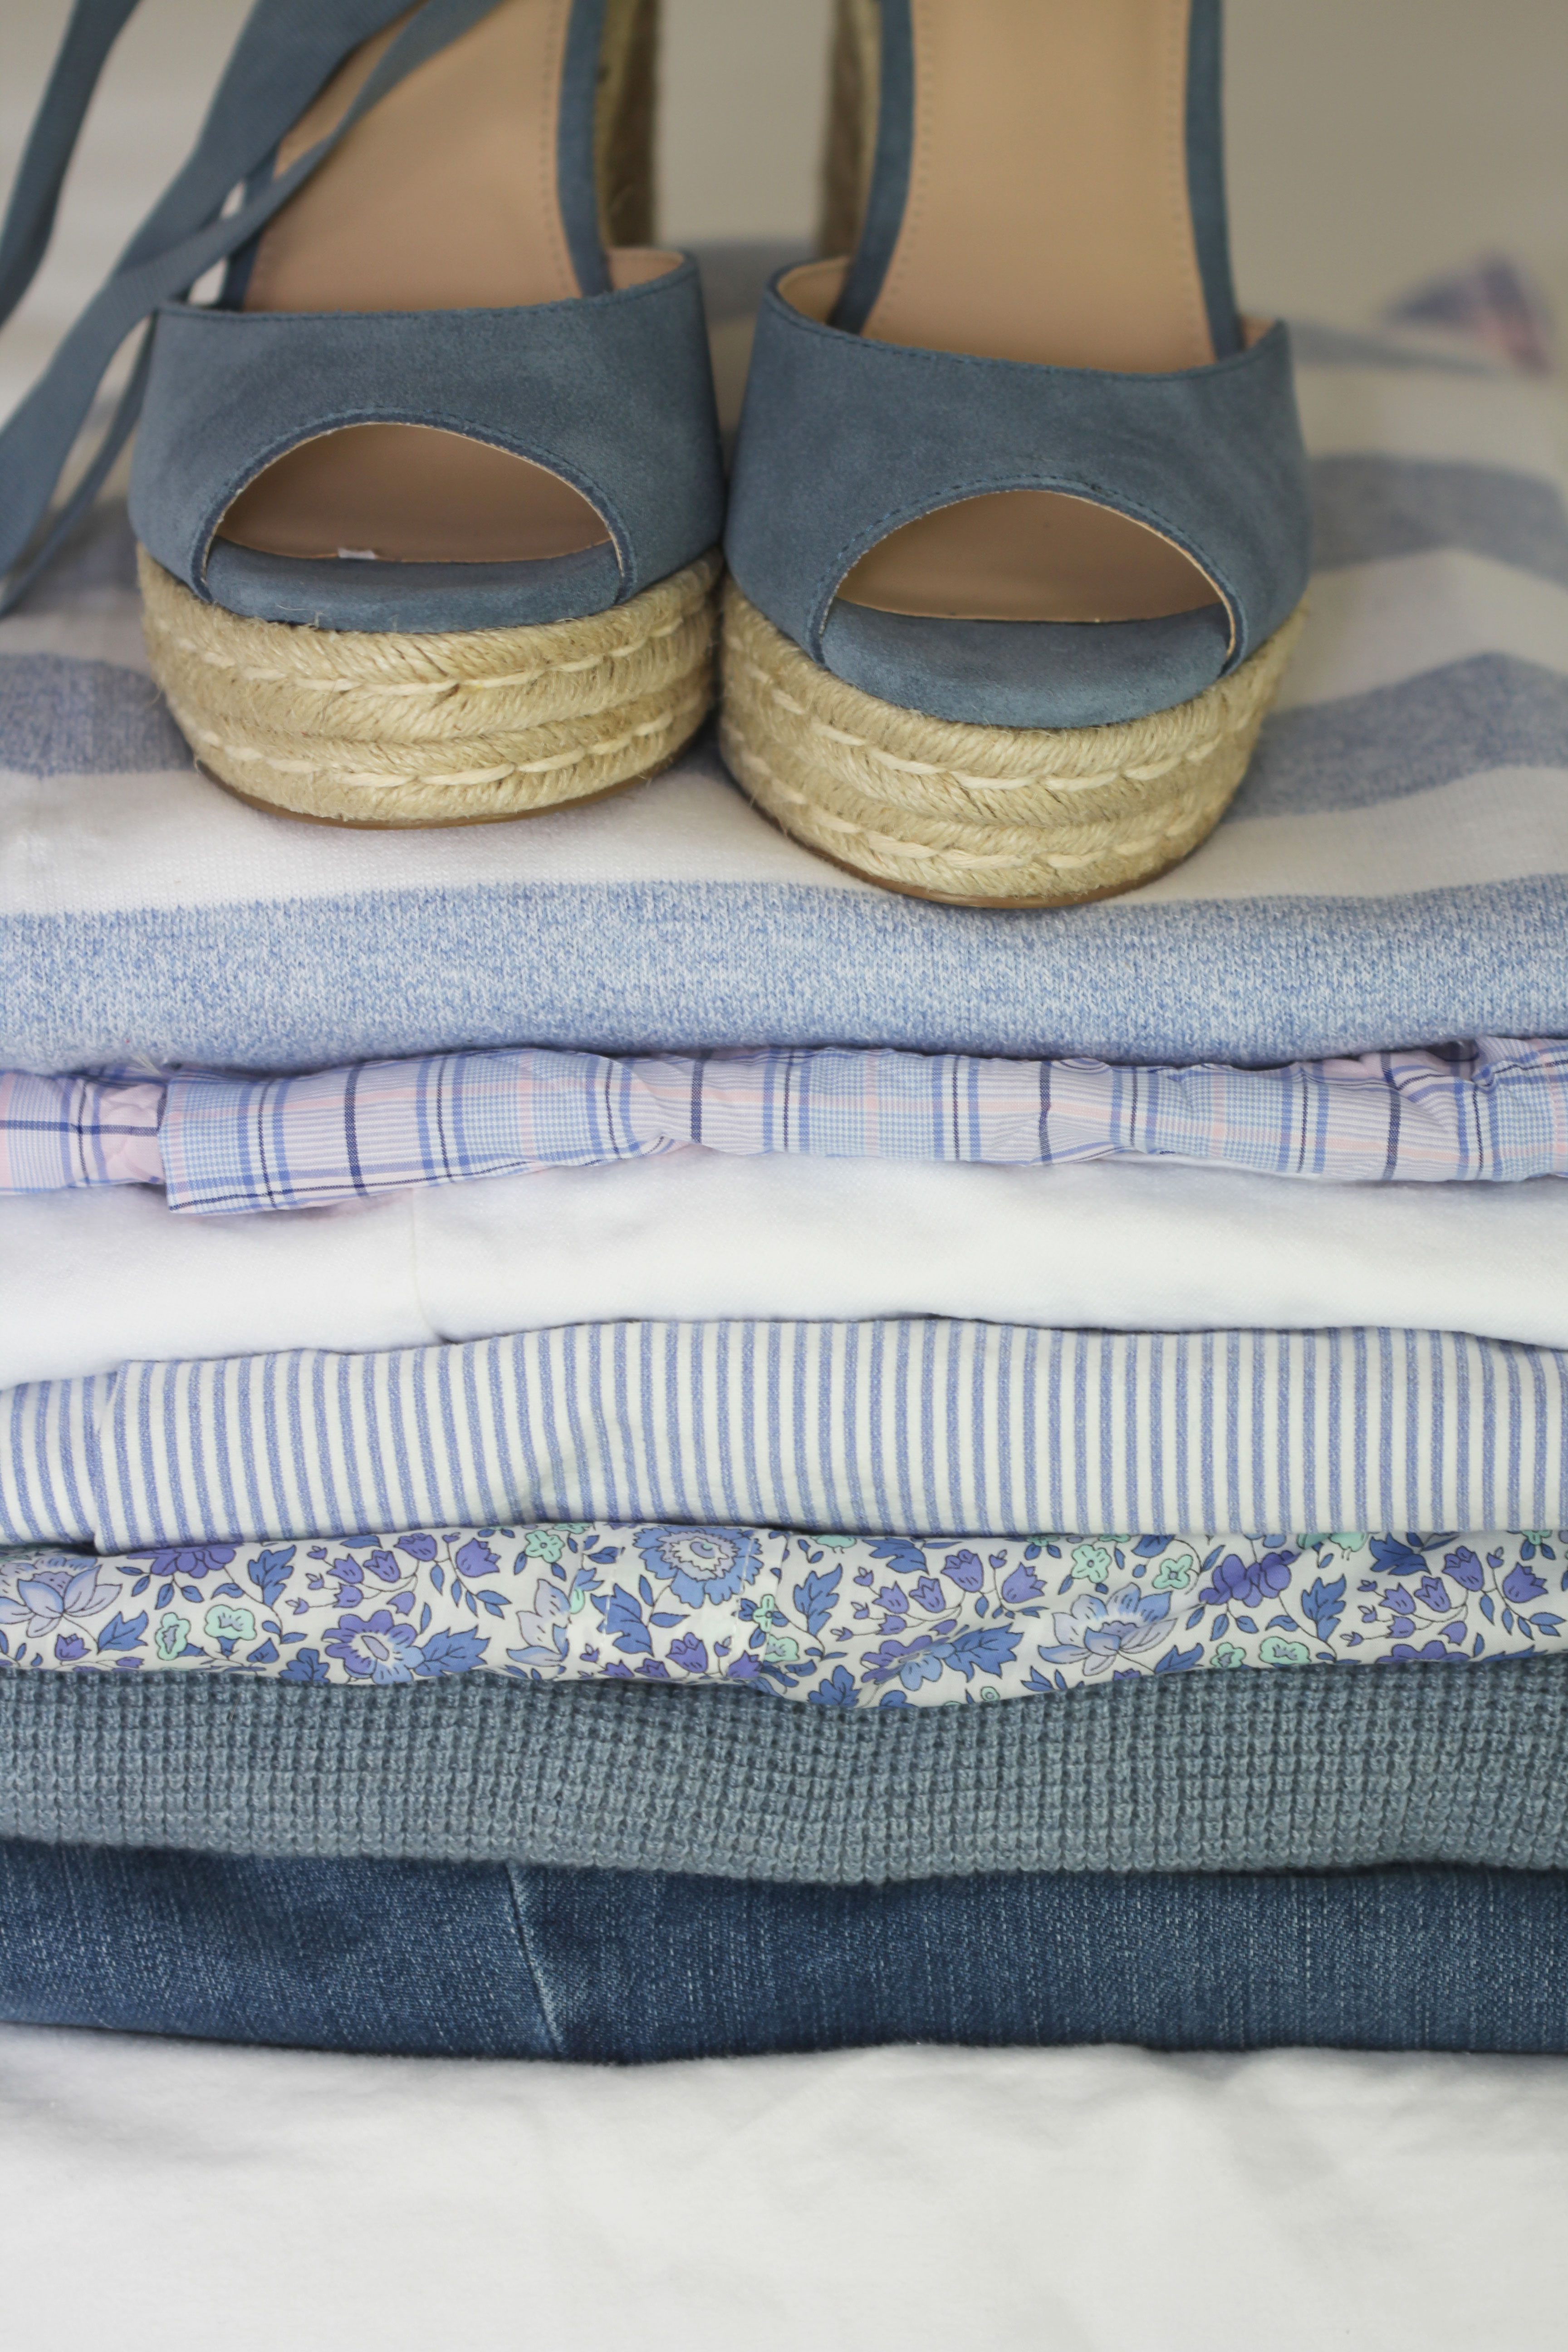 Lifestyle blogger Ridgely Brode of Ridgely's radar features all her favorite blues that mix and match making packing easy!